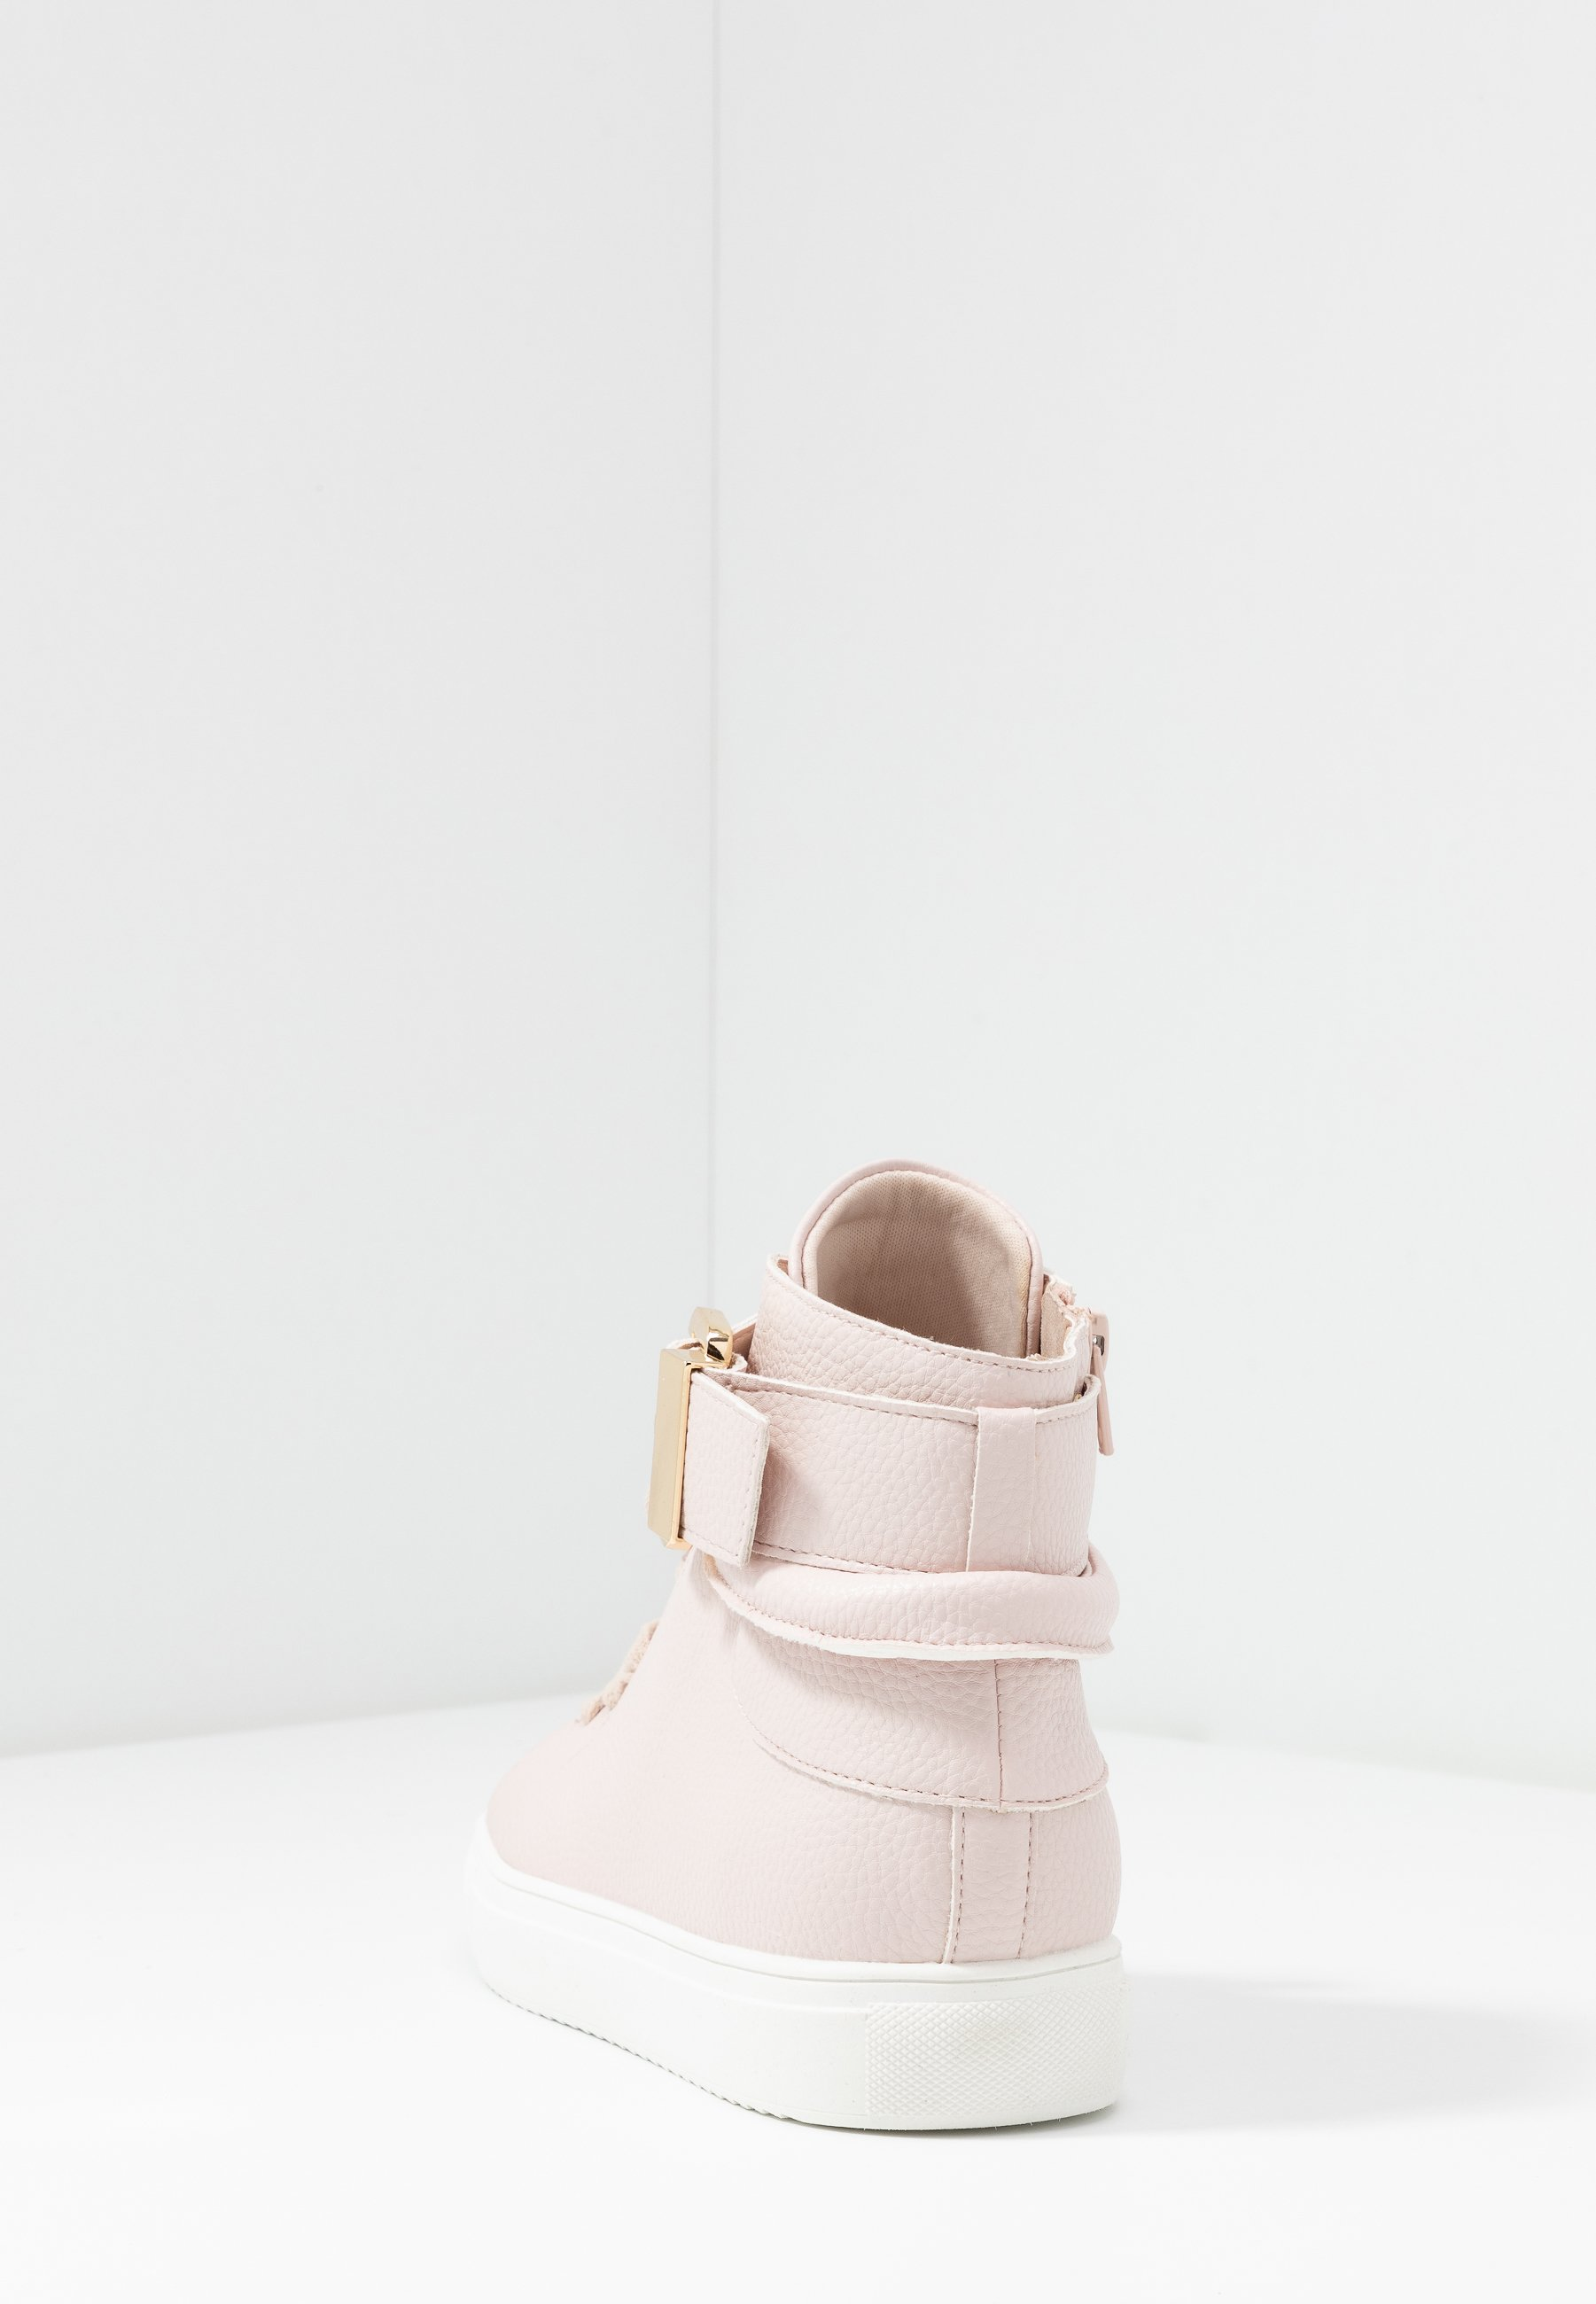 River Island Sneakers high - light pink gD025